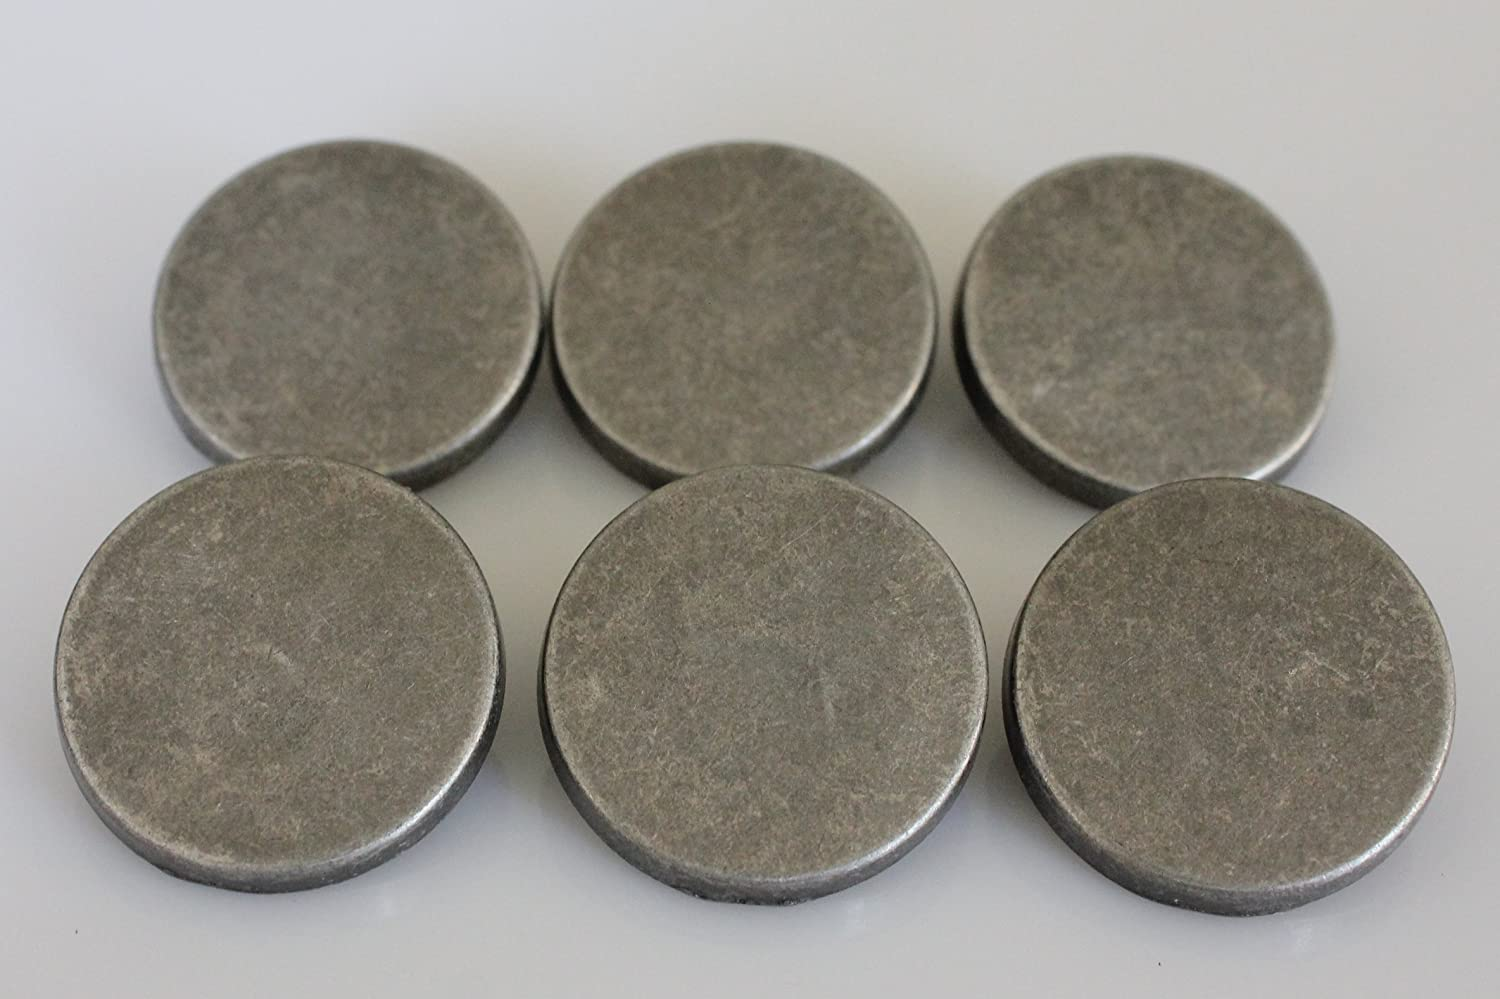 YCEE 6 Pieces Antiqued Silver Metal Coat Big Buttons Set (25mm, 1 inch) -  Flat Surface - For Overcoat, Winter Coat, Uniform, Jacket, Blazer